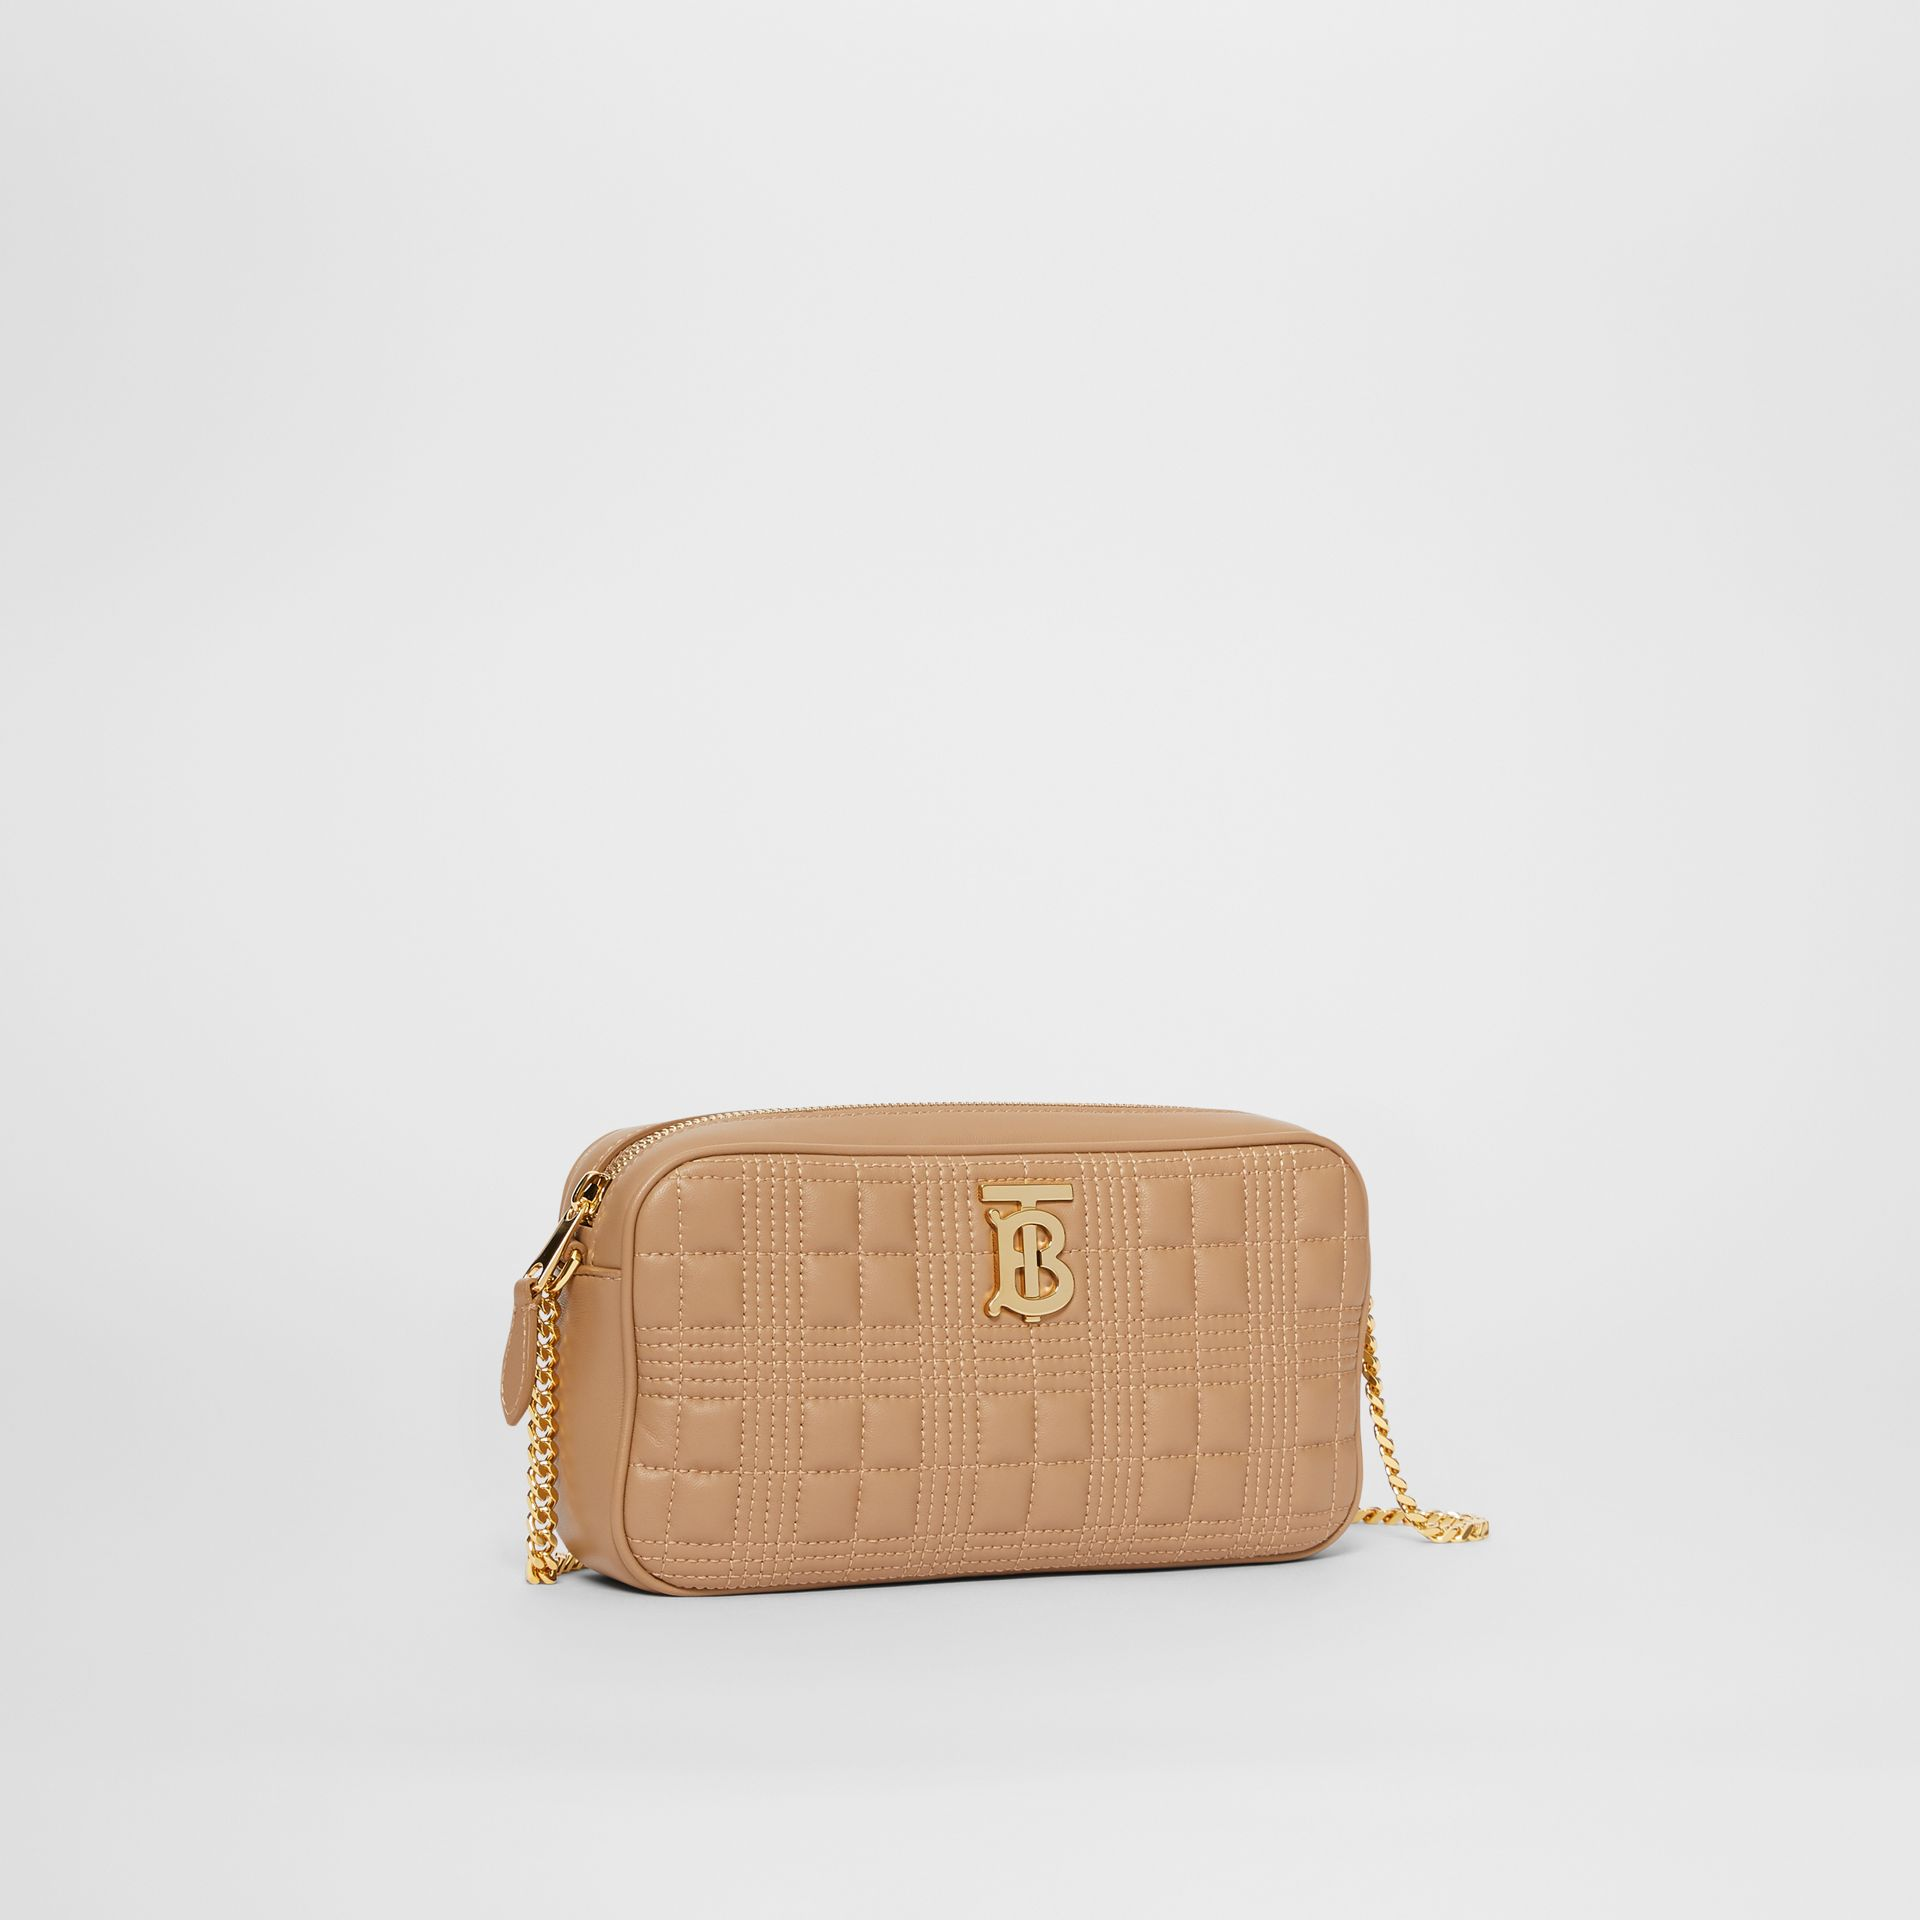 Quilted Lambskin Camera Bag in Camel - Women | Burberry - gallery image 6